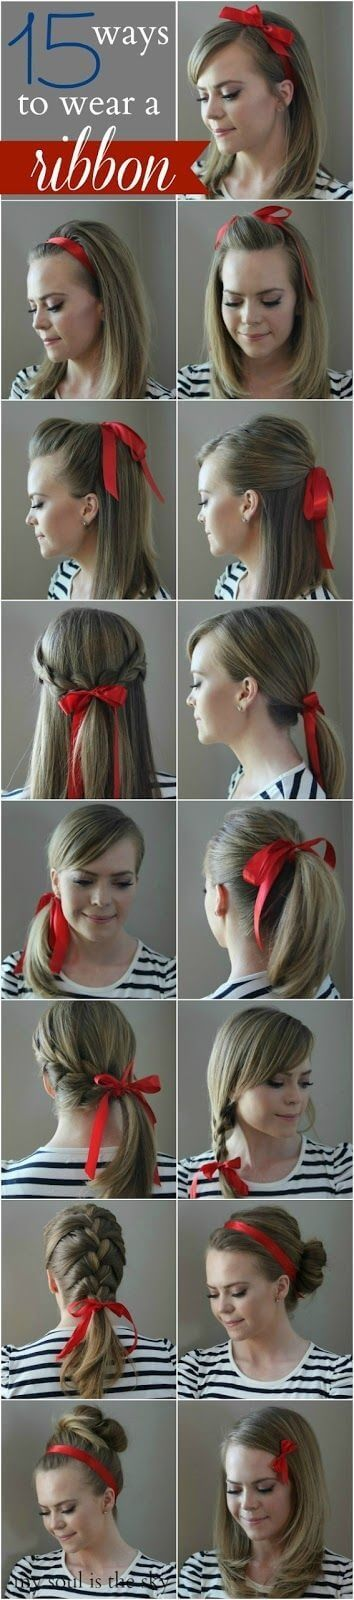 awesome 15 Ways to Wear a Ribbon